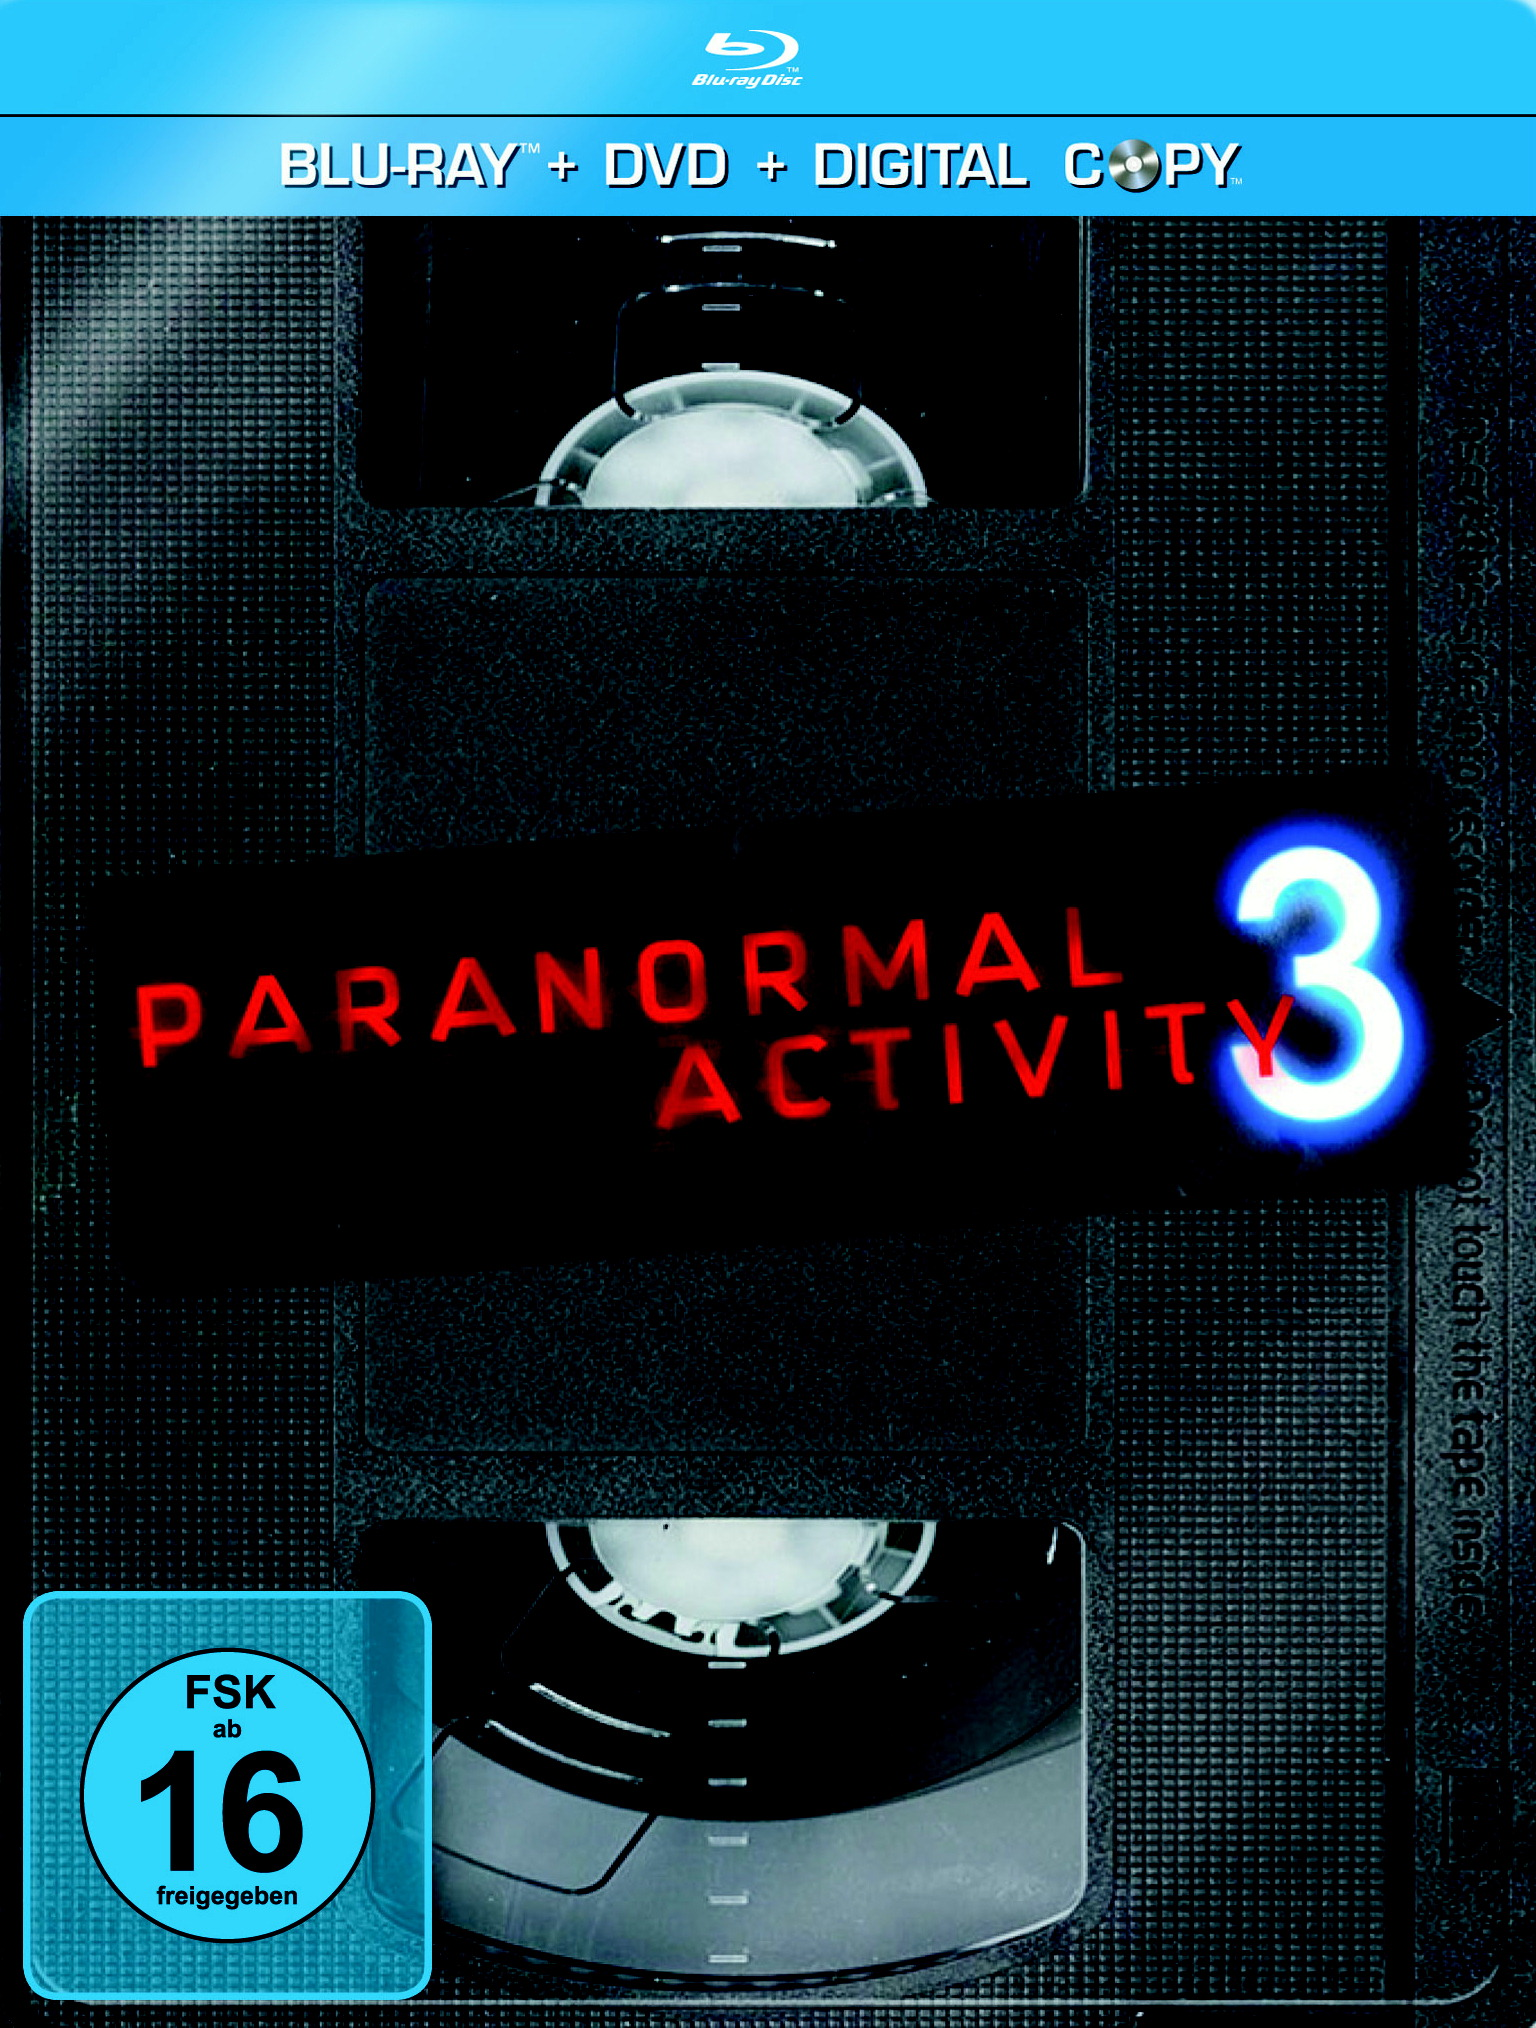 Paranormal Activity 3 (Exklusiv für Media Markt, Steelbook, + DVD, inkl. Digital Copy) Poster